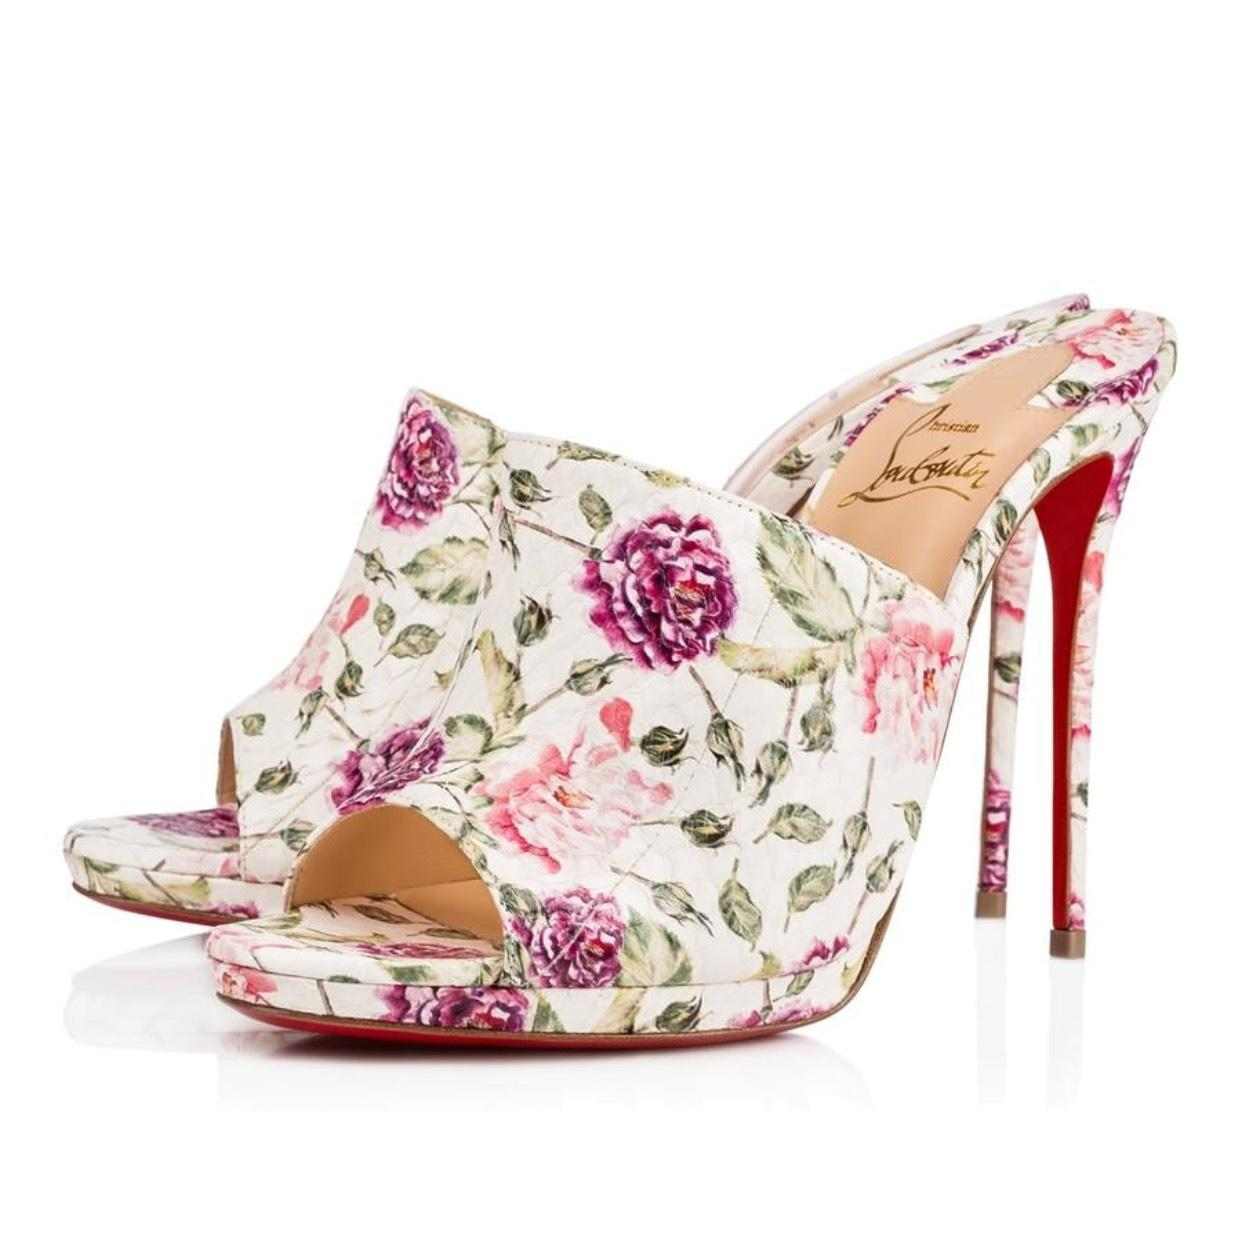 8c9e077114c Christian Louboutin Latte (Per The The The Box) Floral Pigamule  Mules Slides Size EU 39 (Approx. US 9) Regular (M